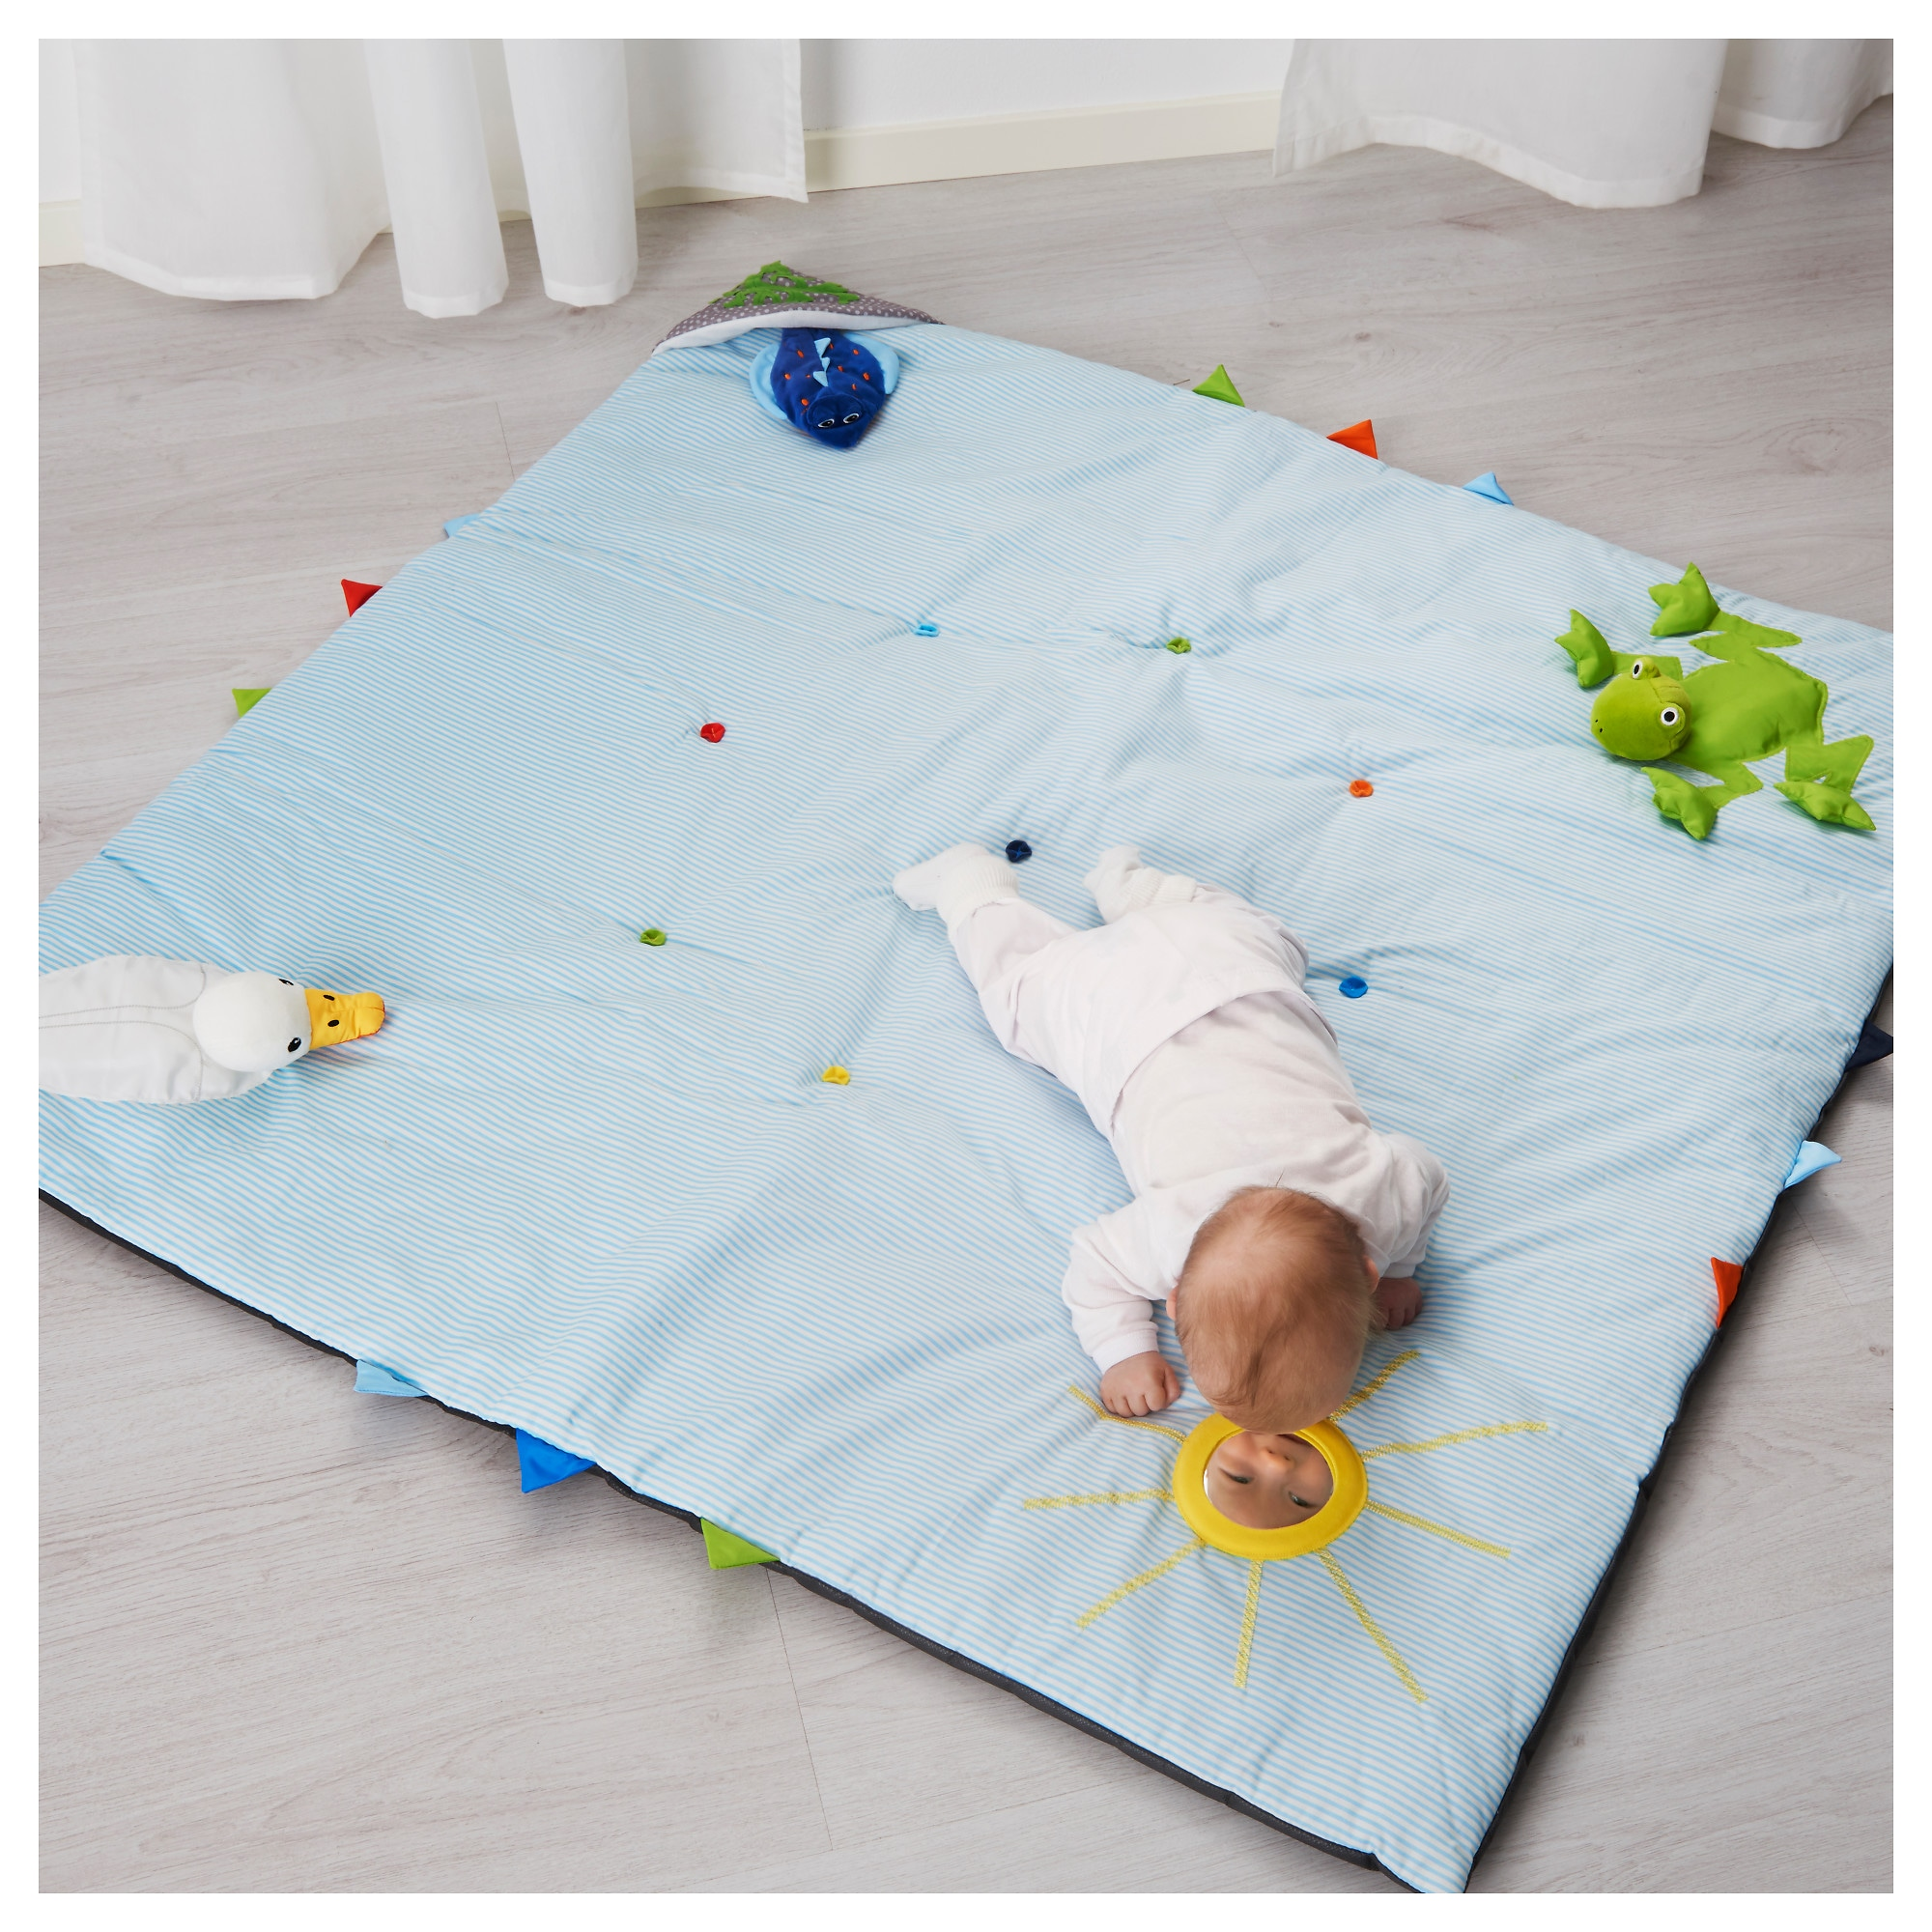 hands play board alex toys mat learning early dp larger playmat little games view